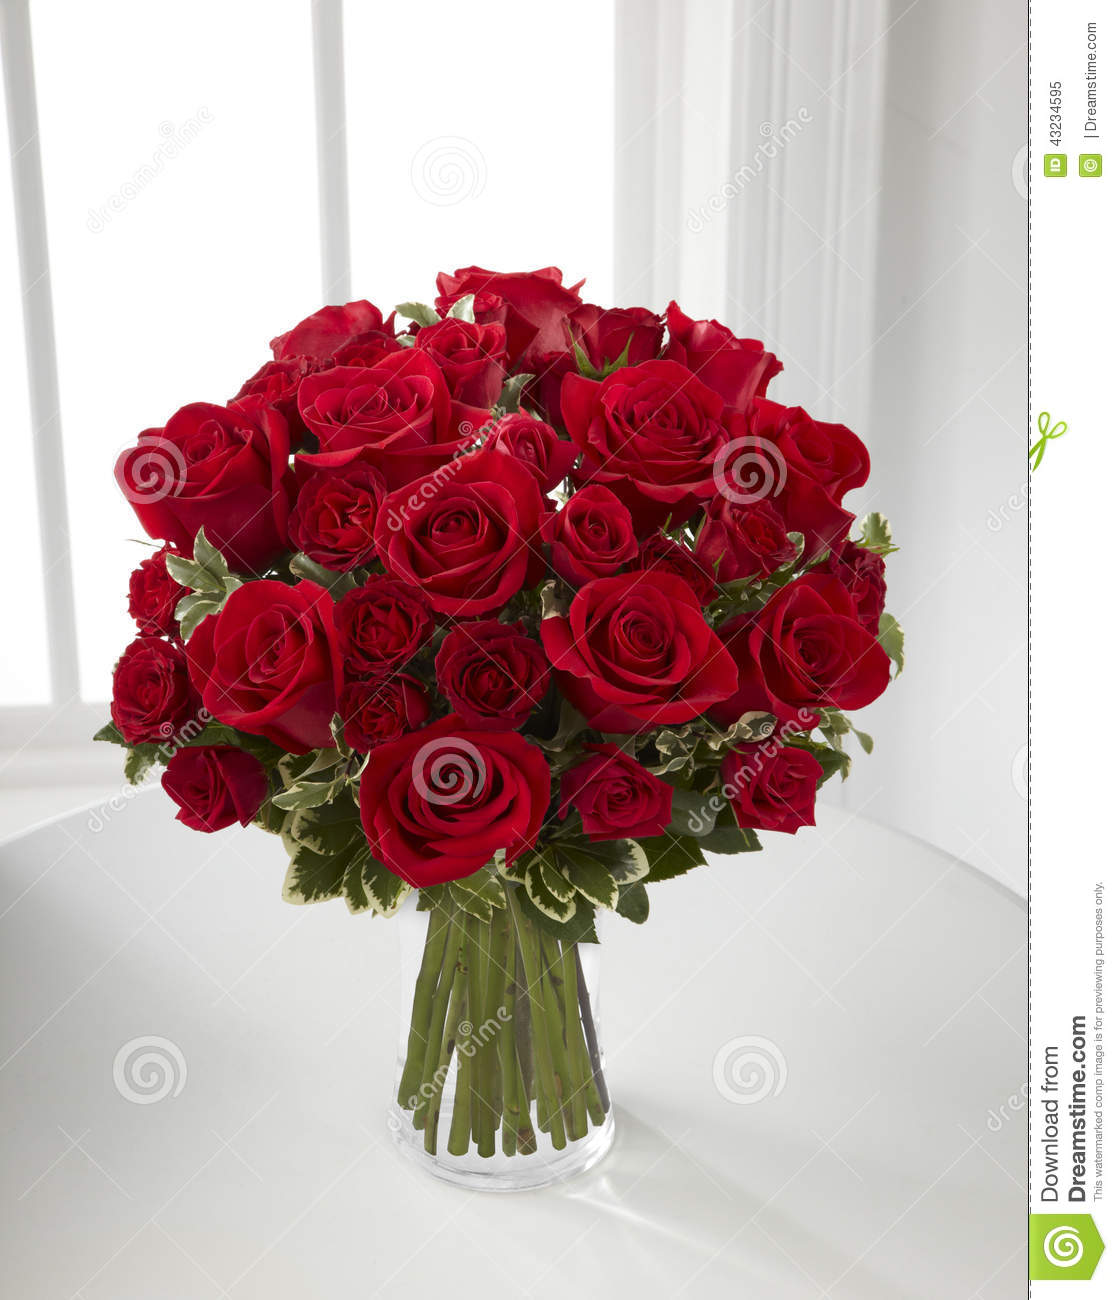 Online Bouquet Delivery In Ghaziabad Stock Image Image Of Look